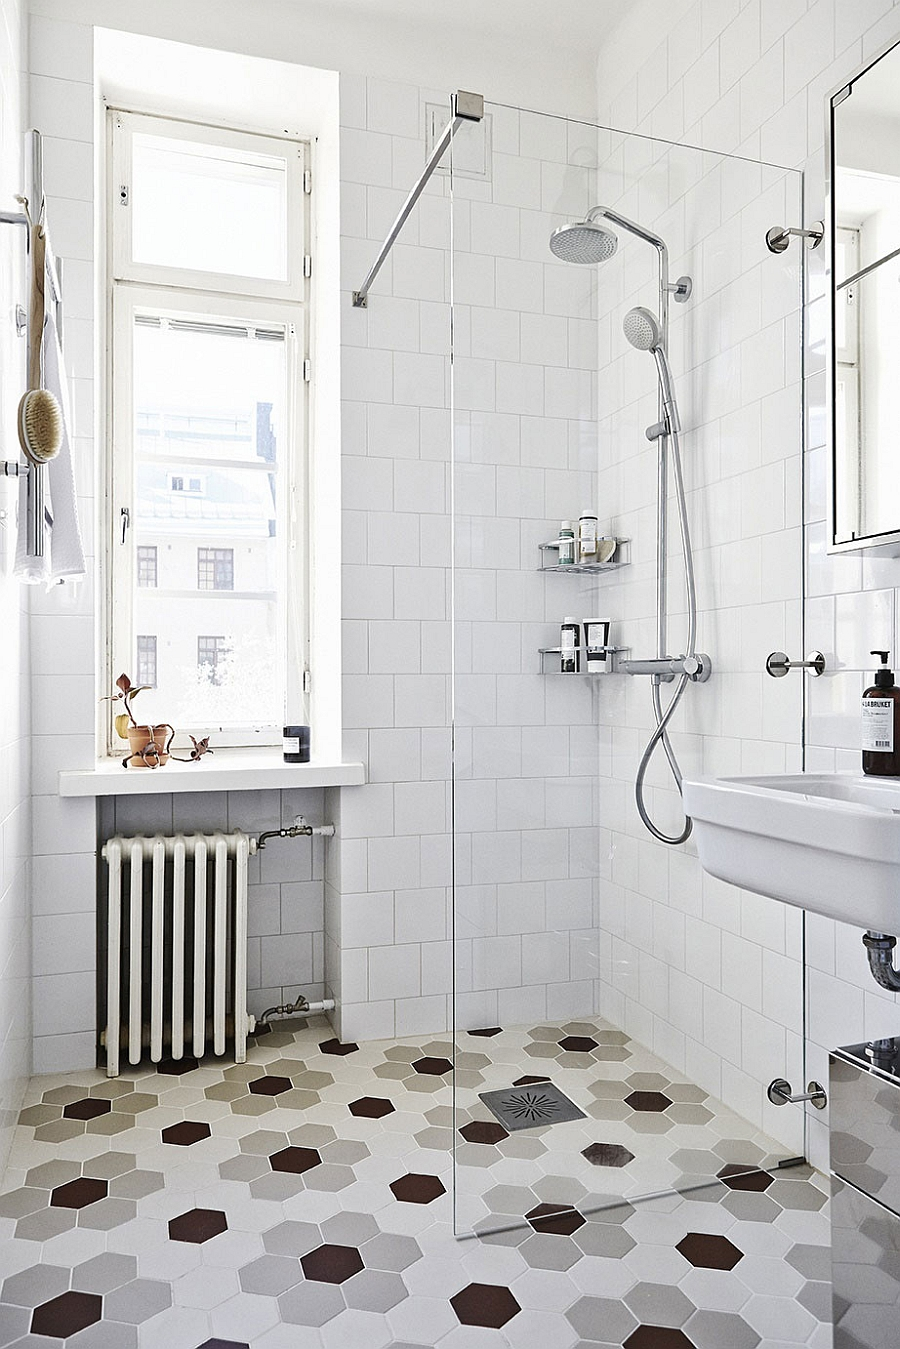 Innovative Different Styles Like Modern, Classic, Scandinavian, Rustic  Vibe Of Ample Style &amp Lend It A Distinct Allure, Be It Wall Tiles, Bathtub, Vanity, Floor, Cabinetry Or The